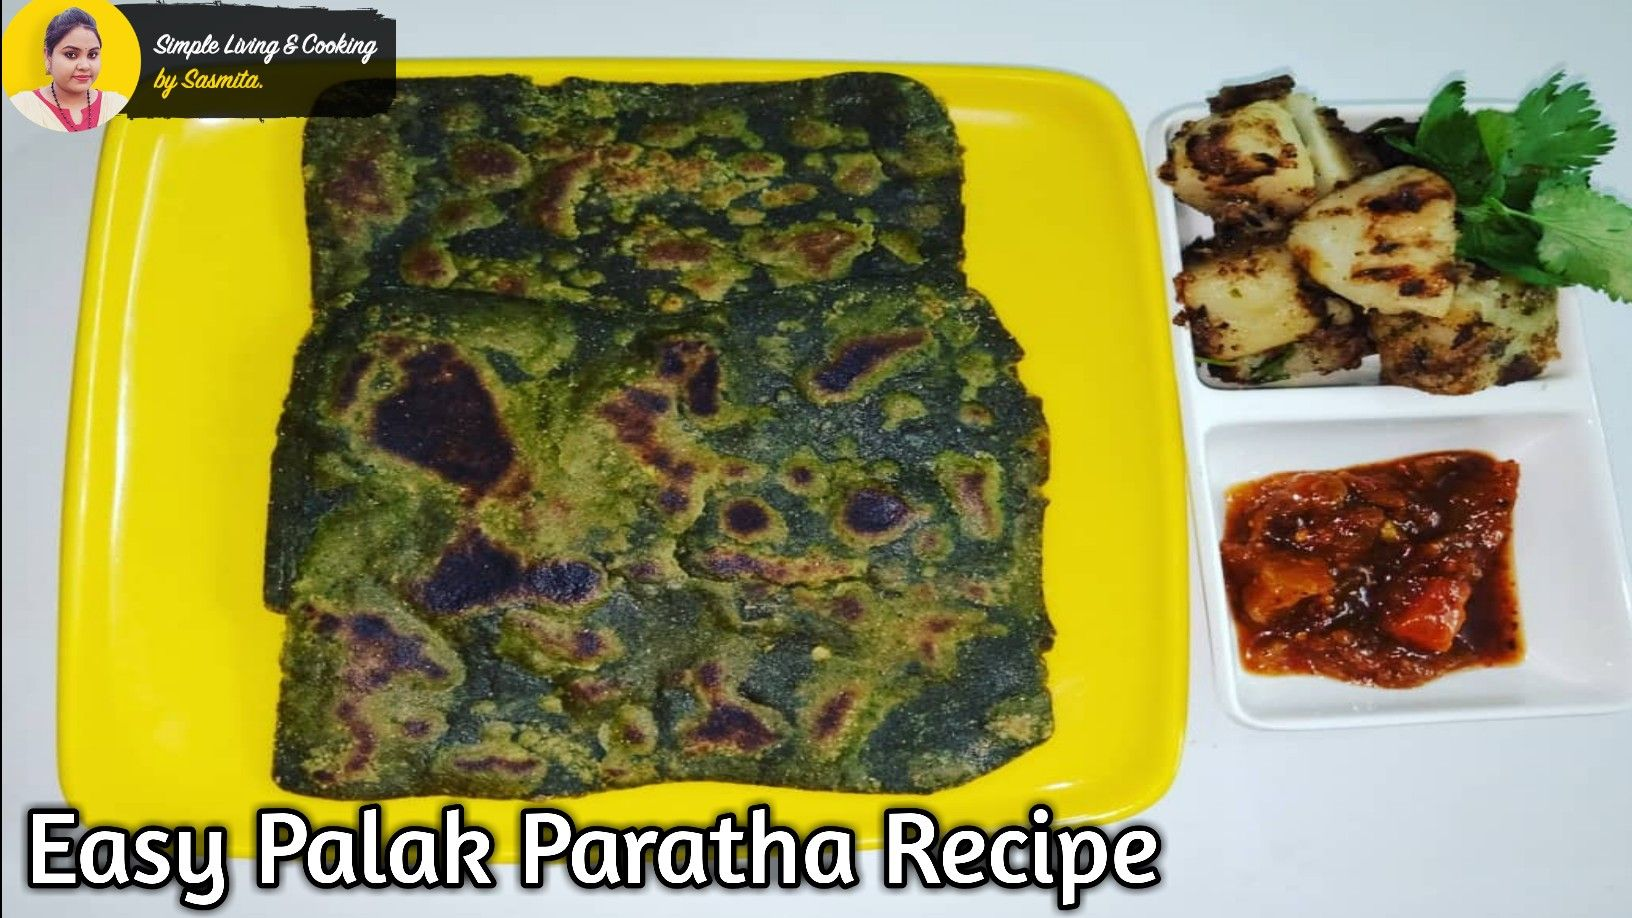 Palak benefits :- 1.Good source of iron. 2.Great source of insoluble fiber. 3.Goo for eyes. 4.Anti inflammatory. 5.Aids in weight loss. 6.Diabetic friendly . 7.Rich in Vitamin C. #palakparatha #simplelivingcooking #spinachparatha #paratha #food #indianfood #foodblogger #homemade #delicious #breakfast #parathas #desifood #yummy #northindianfood #tasty #dinner #lunch #healthyfood #streetfood #parathalovers #paratharecipes #homemadefood #roti #indianbreakfast #punjabifood #parathay